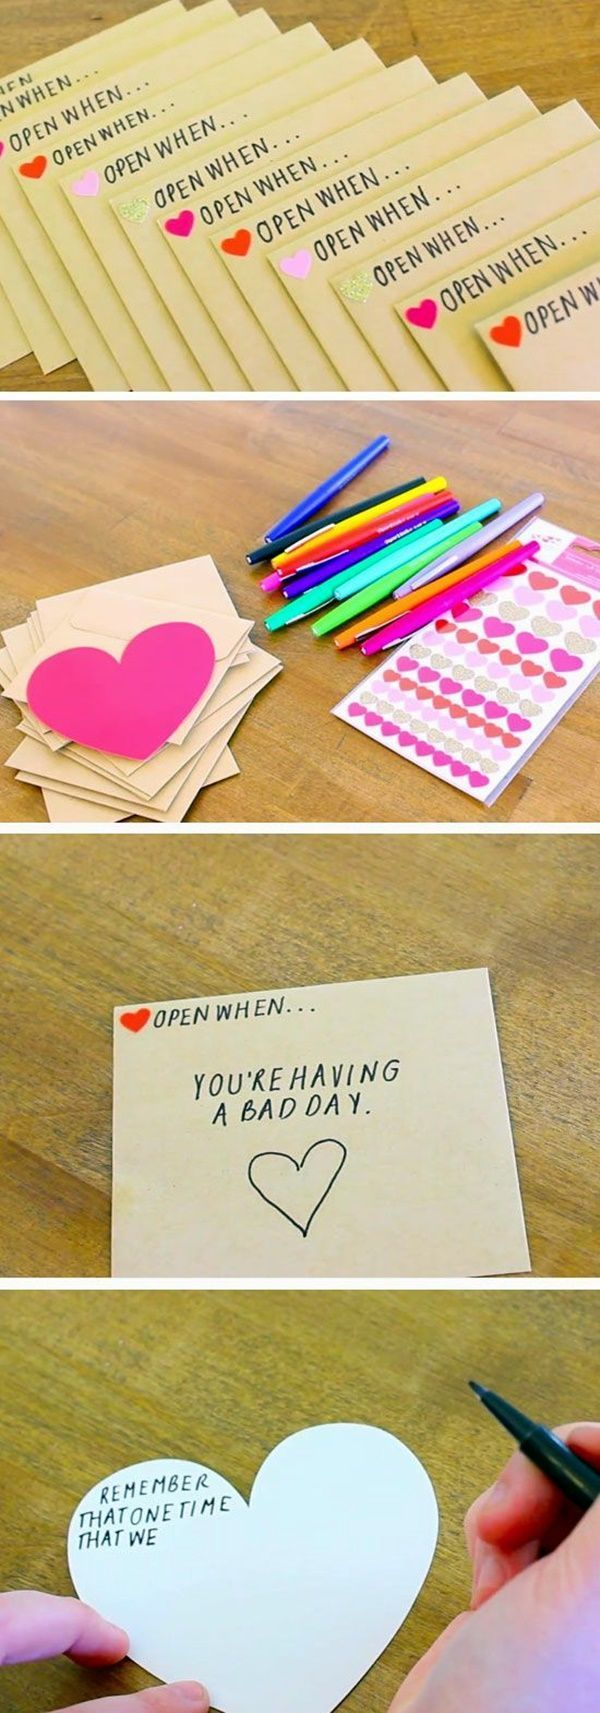 60 Homemade Valentines Day Ideas for Him that're really CUTE